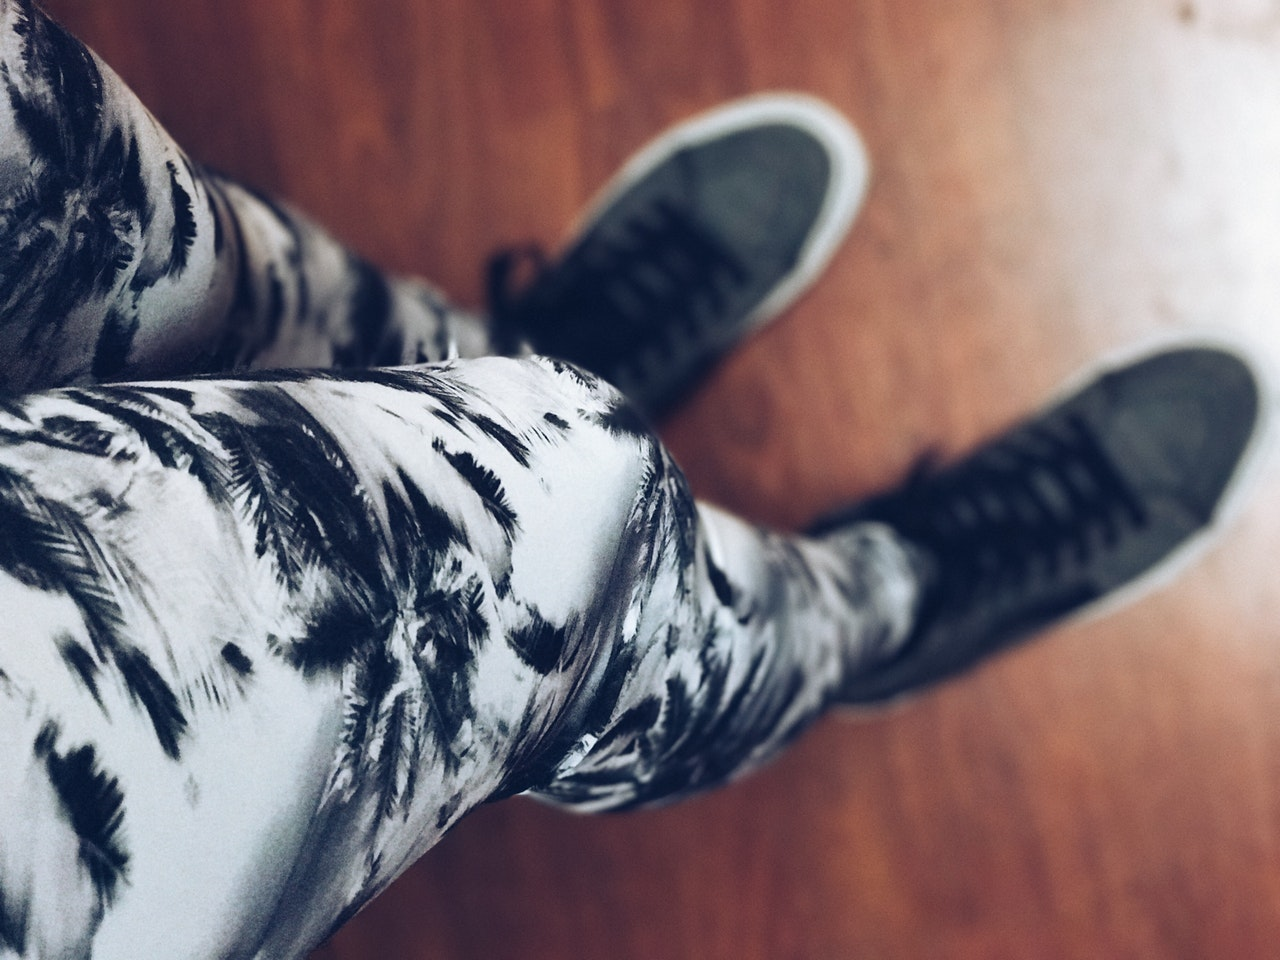 A girl's legs in black-and-white palm tree-patterned leggings and charcoal grey sneakers.